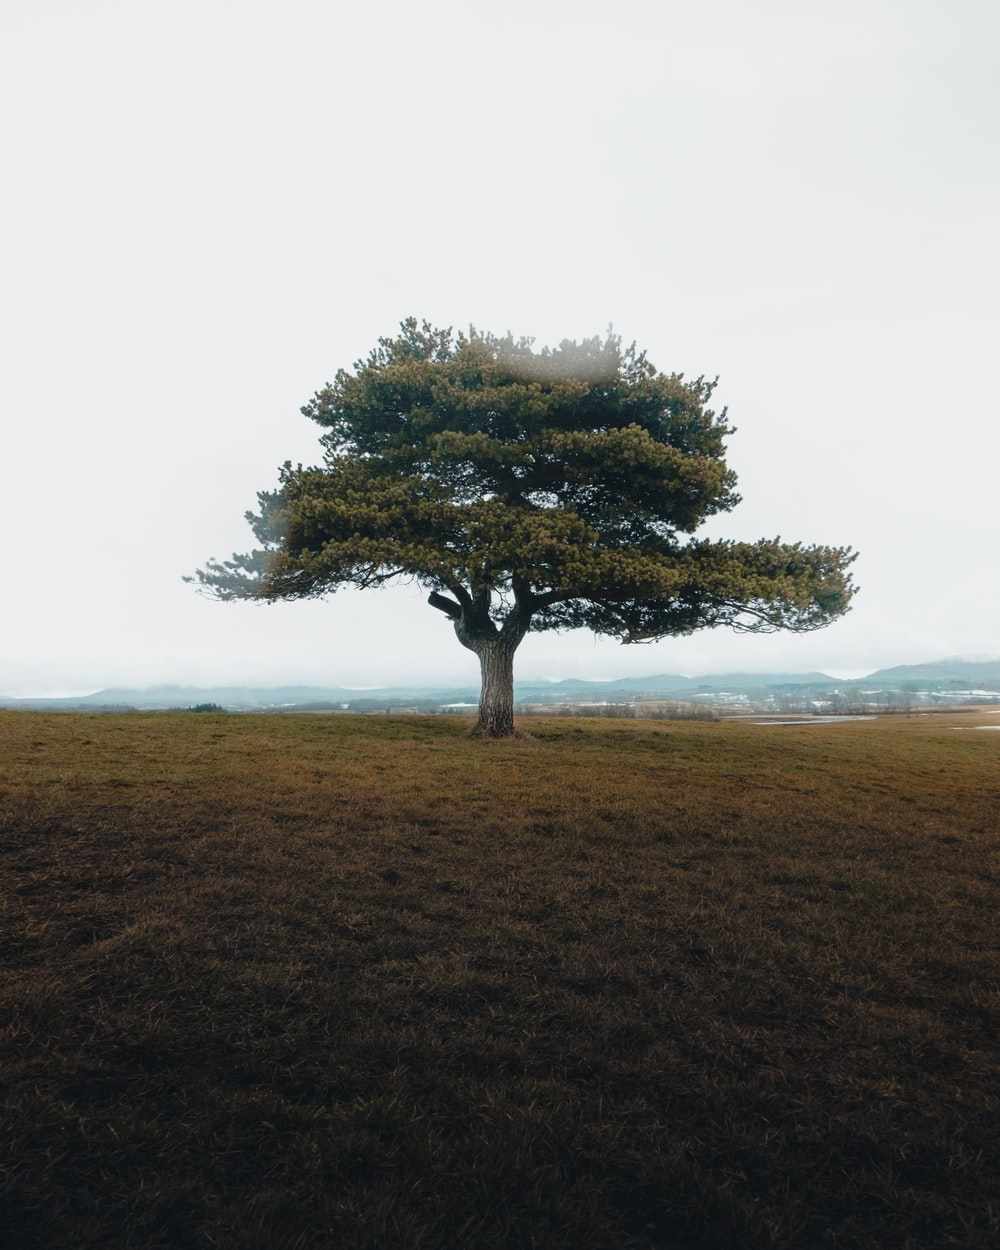 green tree on brown grass field during daytime